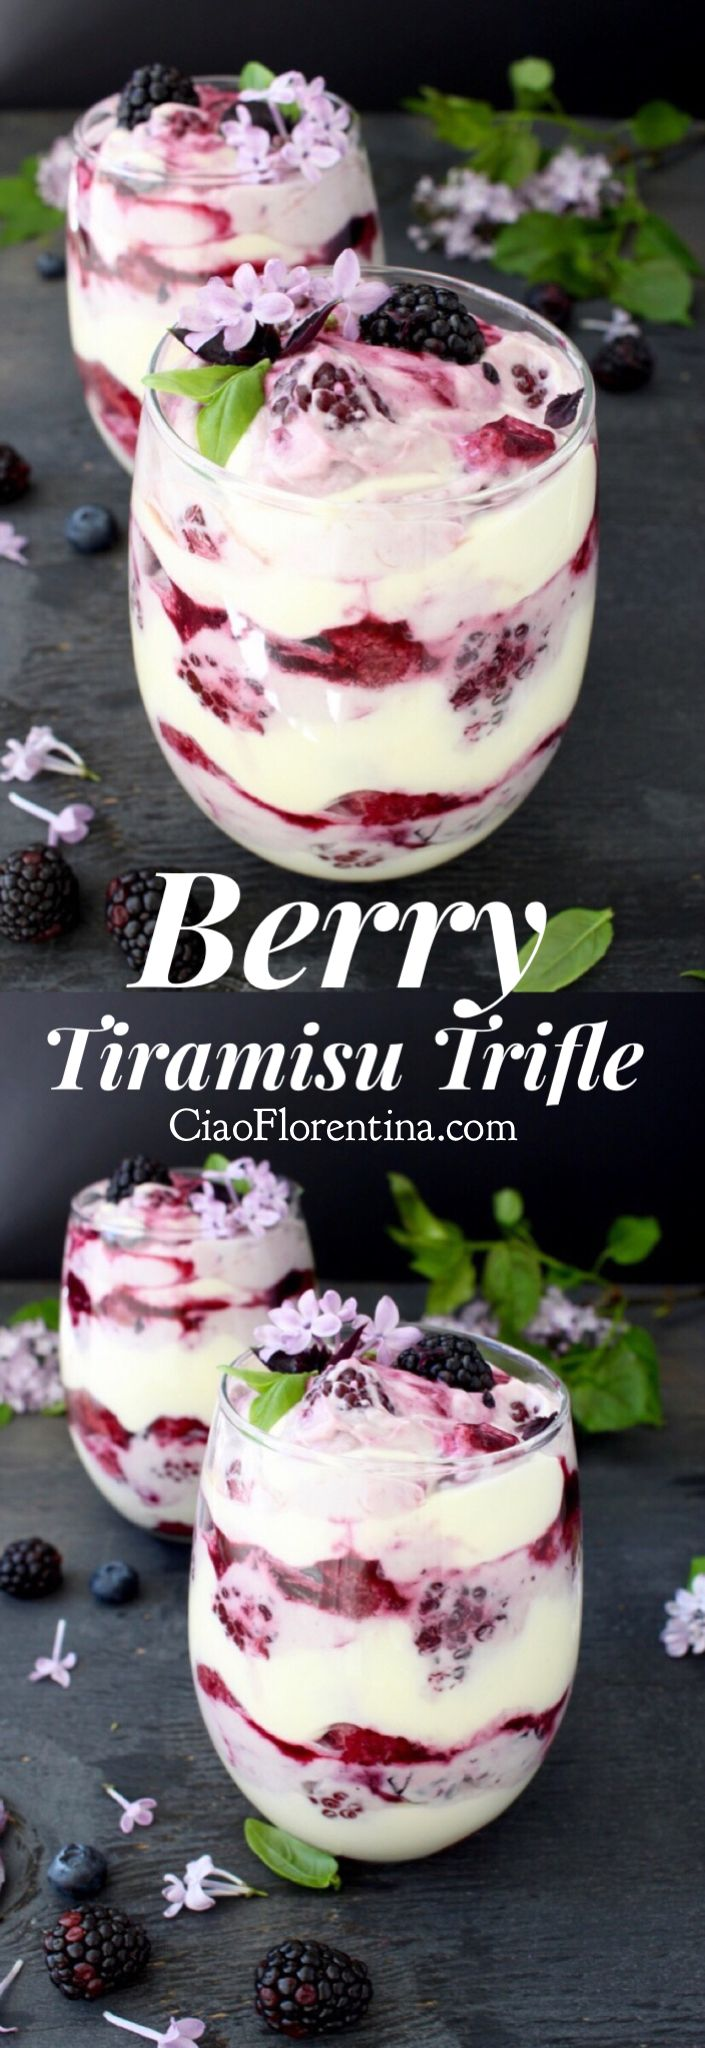 Berry Tiramisu Trifle Recipe, Easy, No Bake, No Alcohol, with Mascarpone Cheese and Lady Fingers | CiaoFlorentina.com @CiaoFlorentina